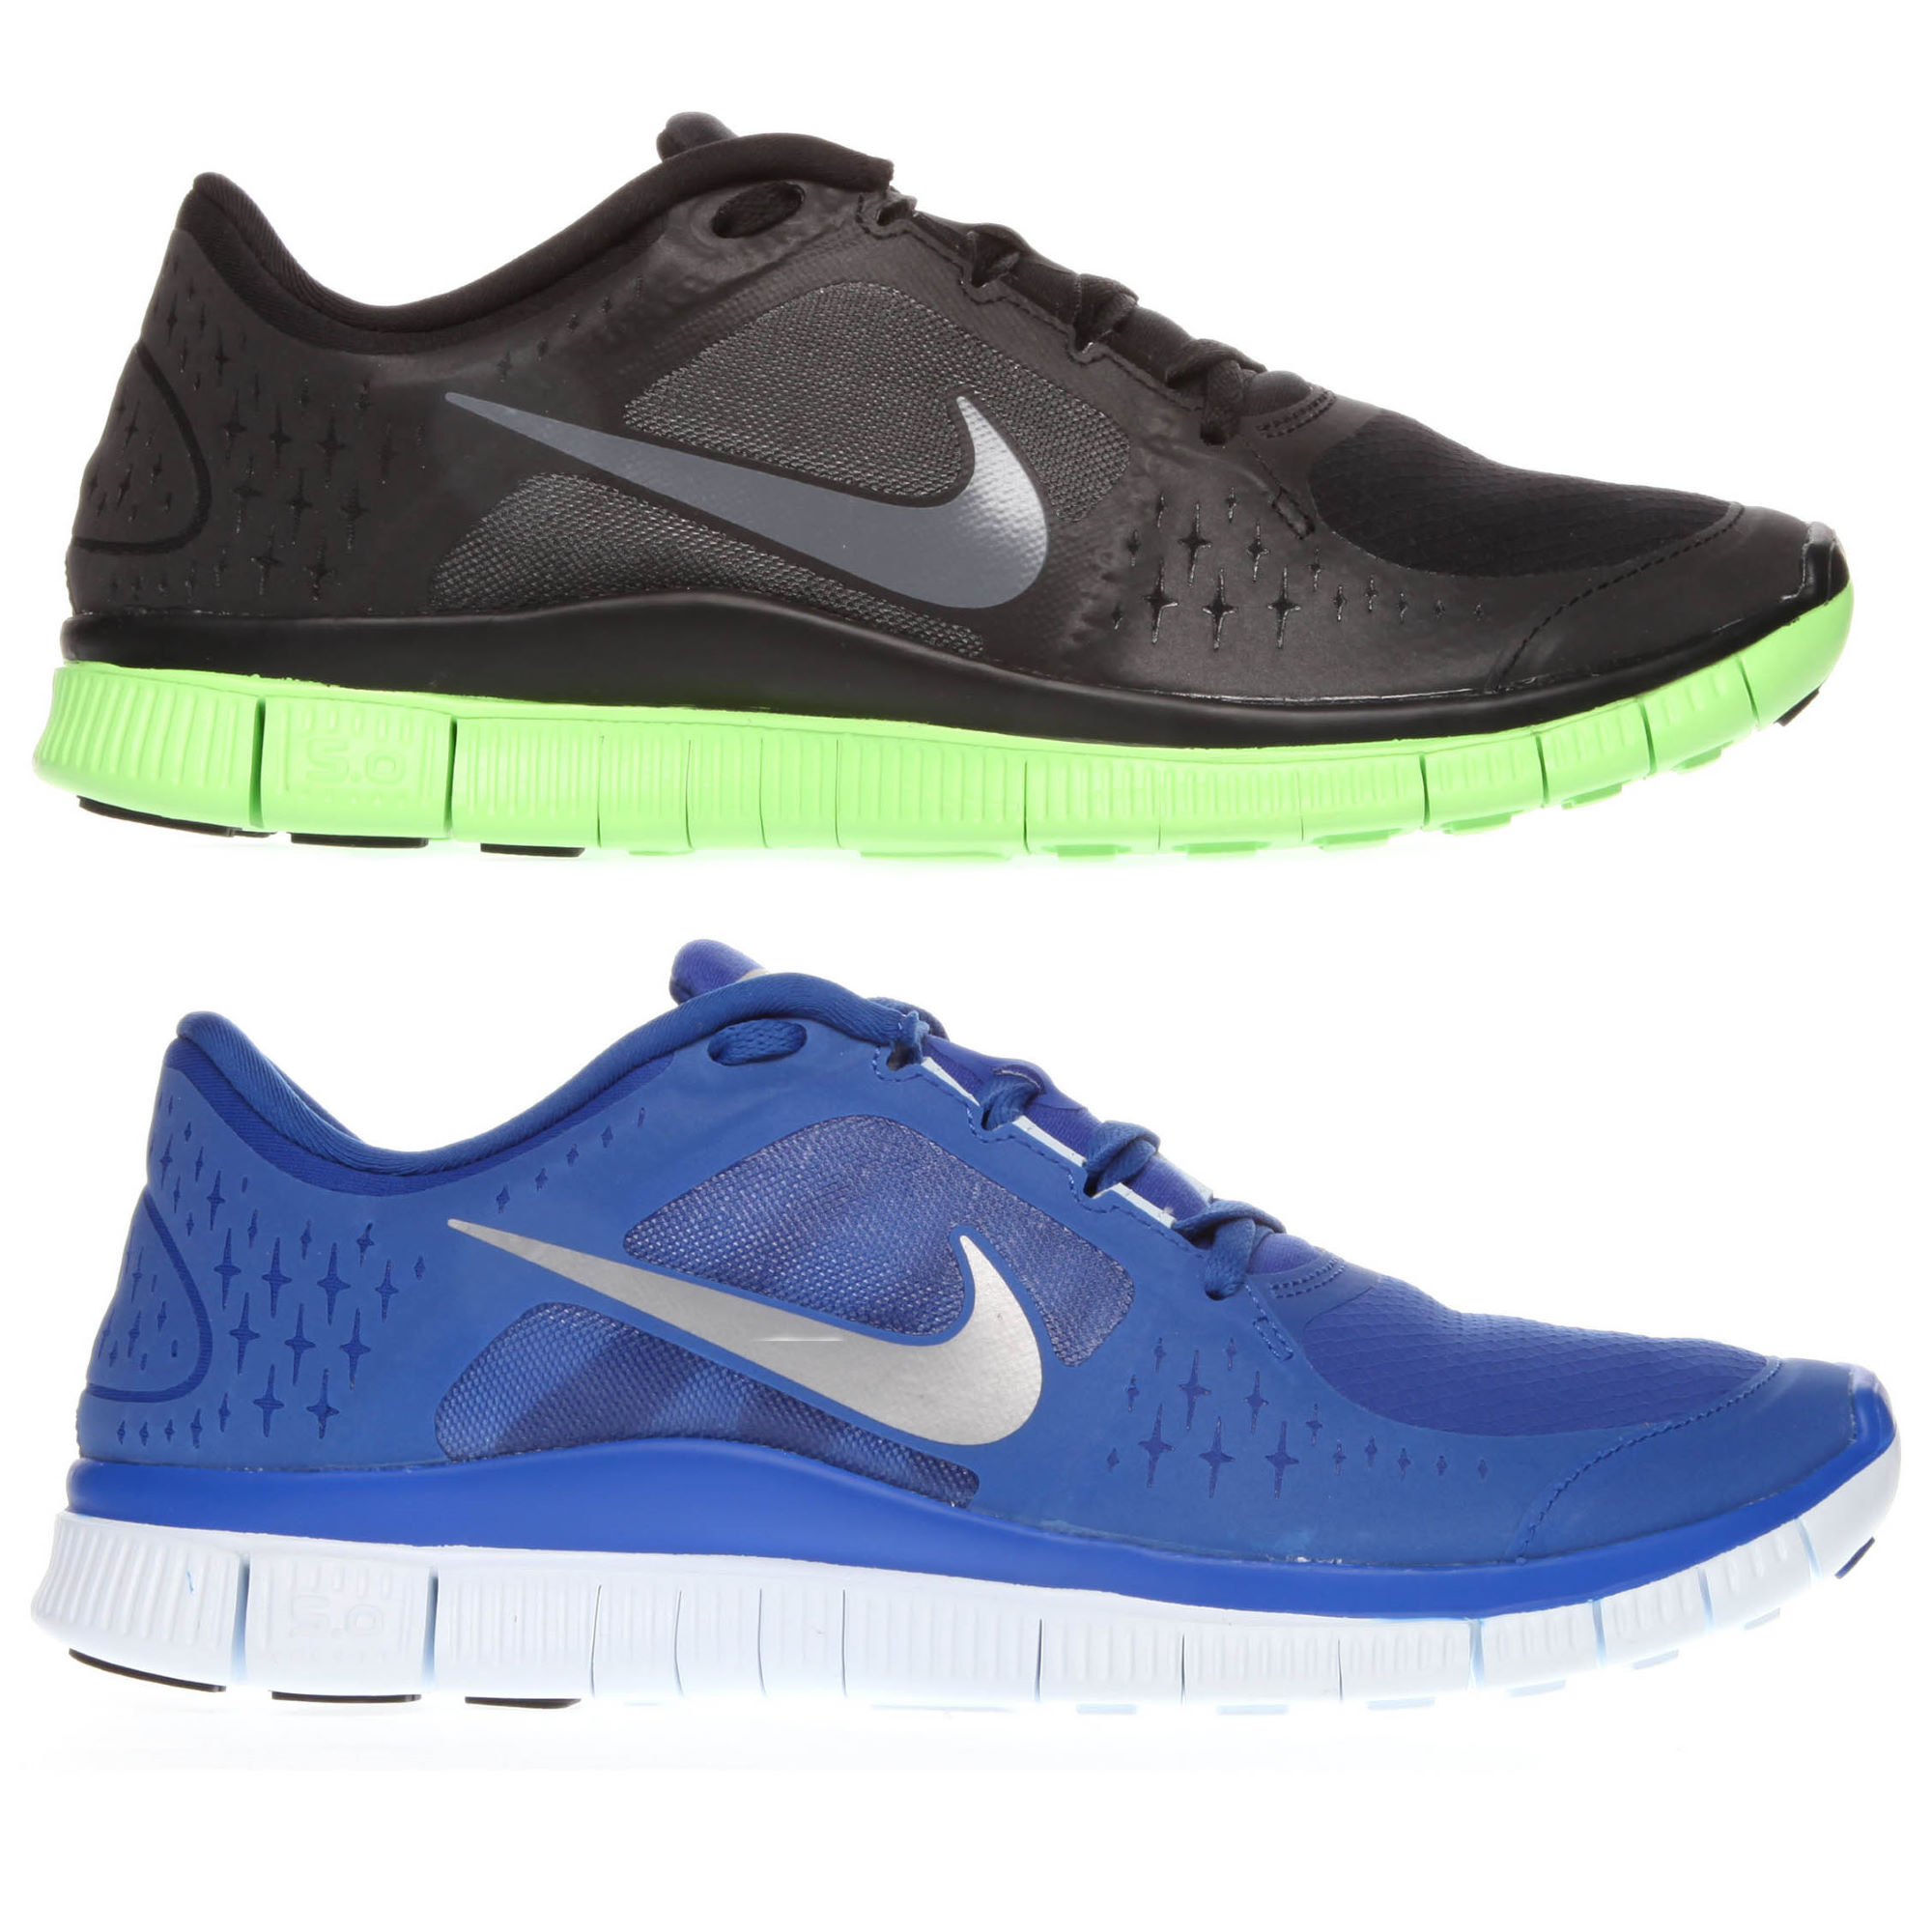 | Nike | Free Run Plus 3 Shield Shoes AW12 | Wiggle France